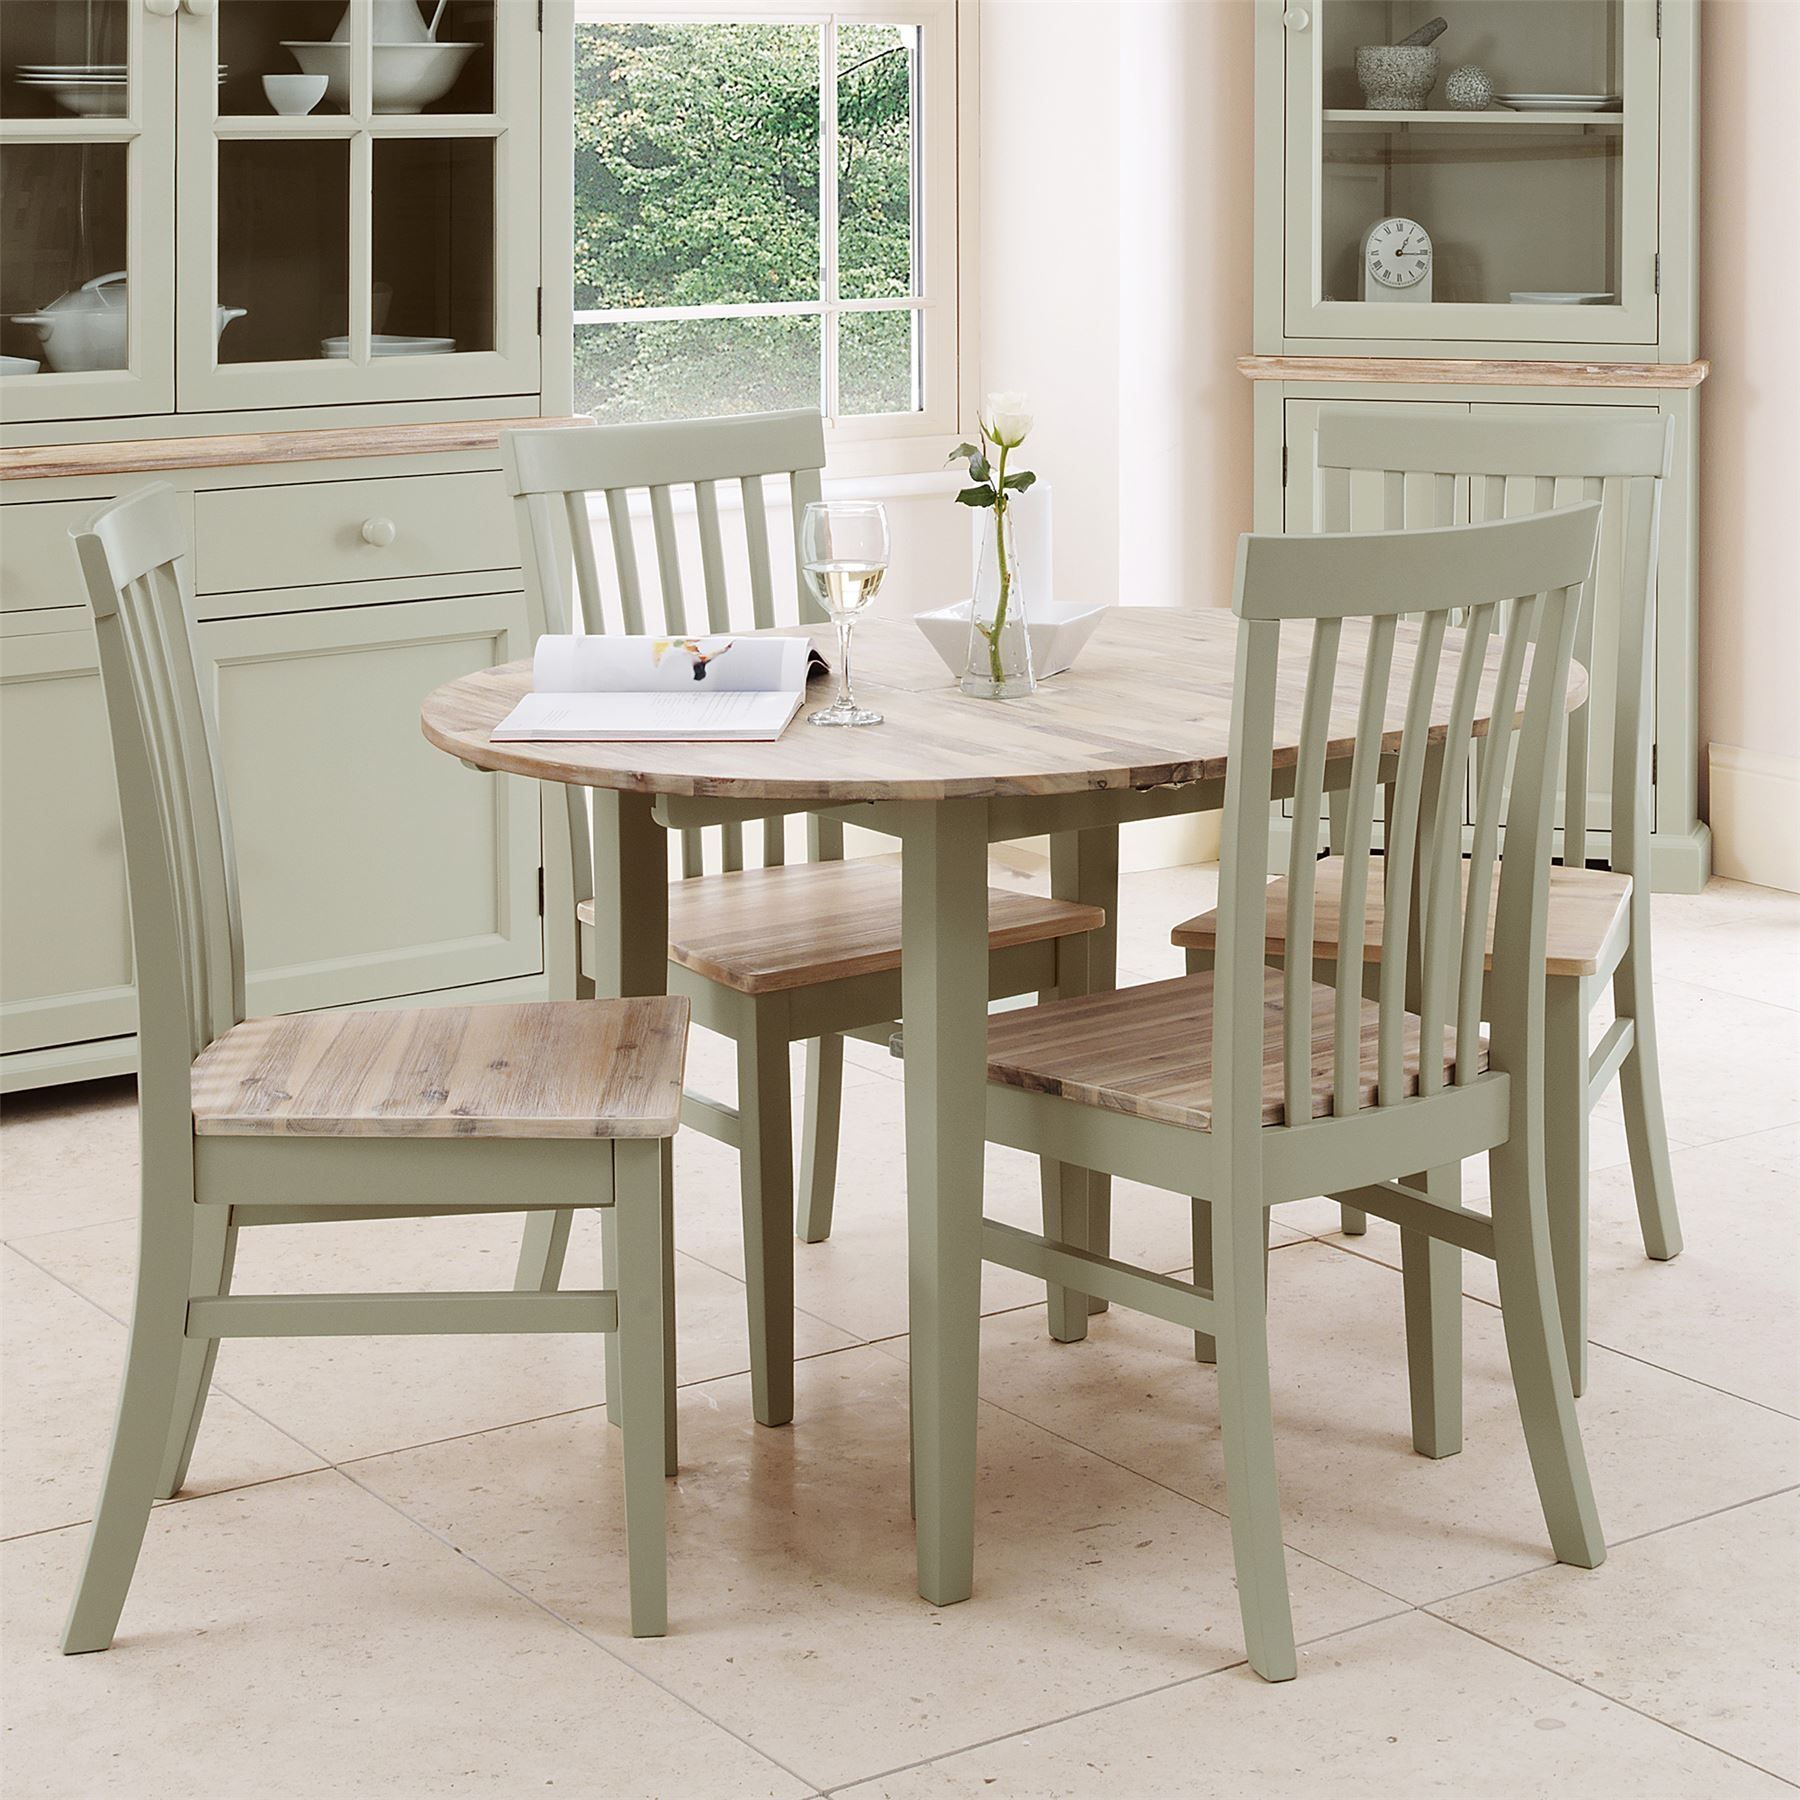 40++ Country kitchen dining table and chairs Inspiration